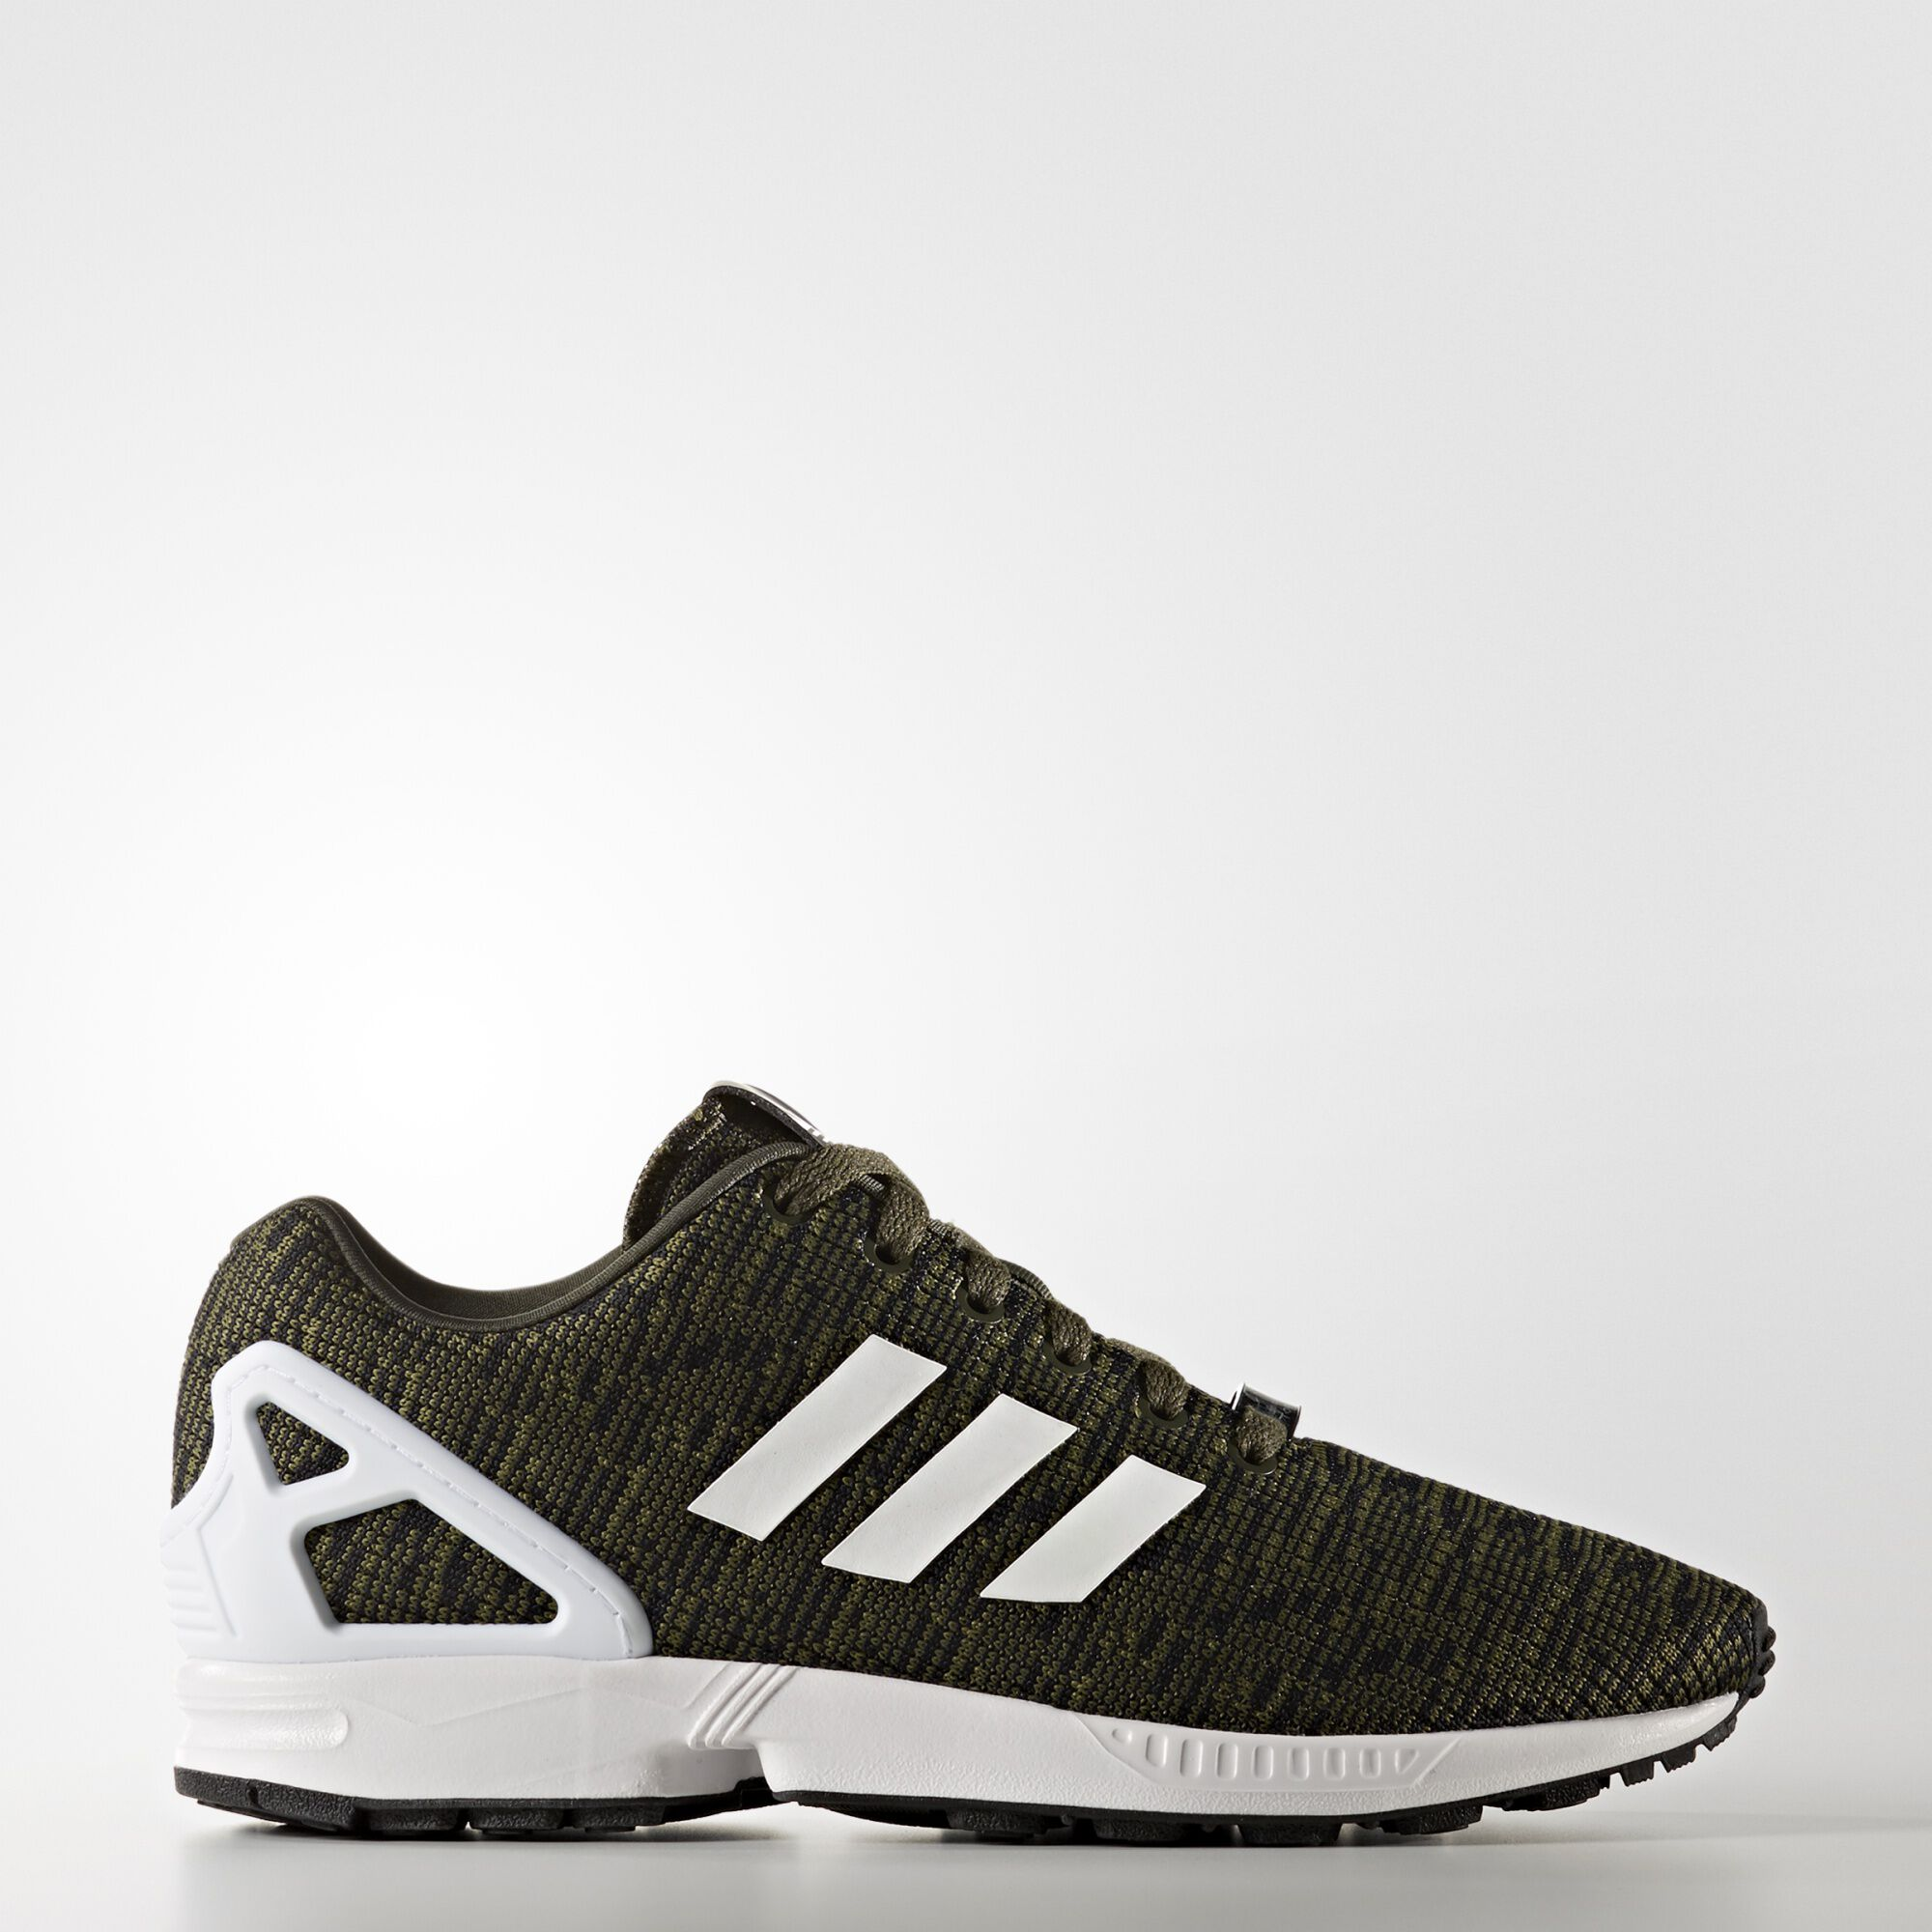 Adidas Shoes Zx Flux Pink